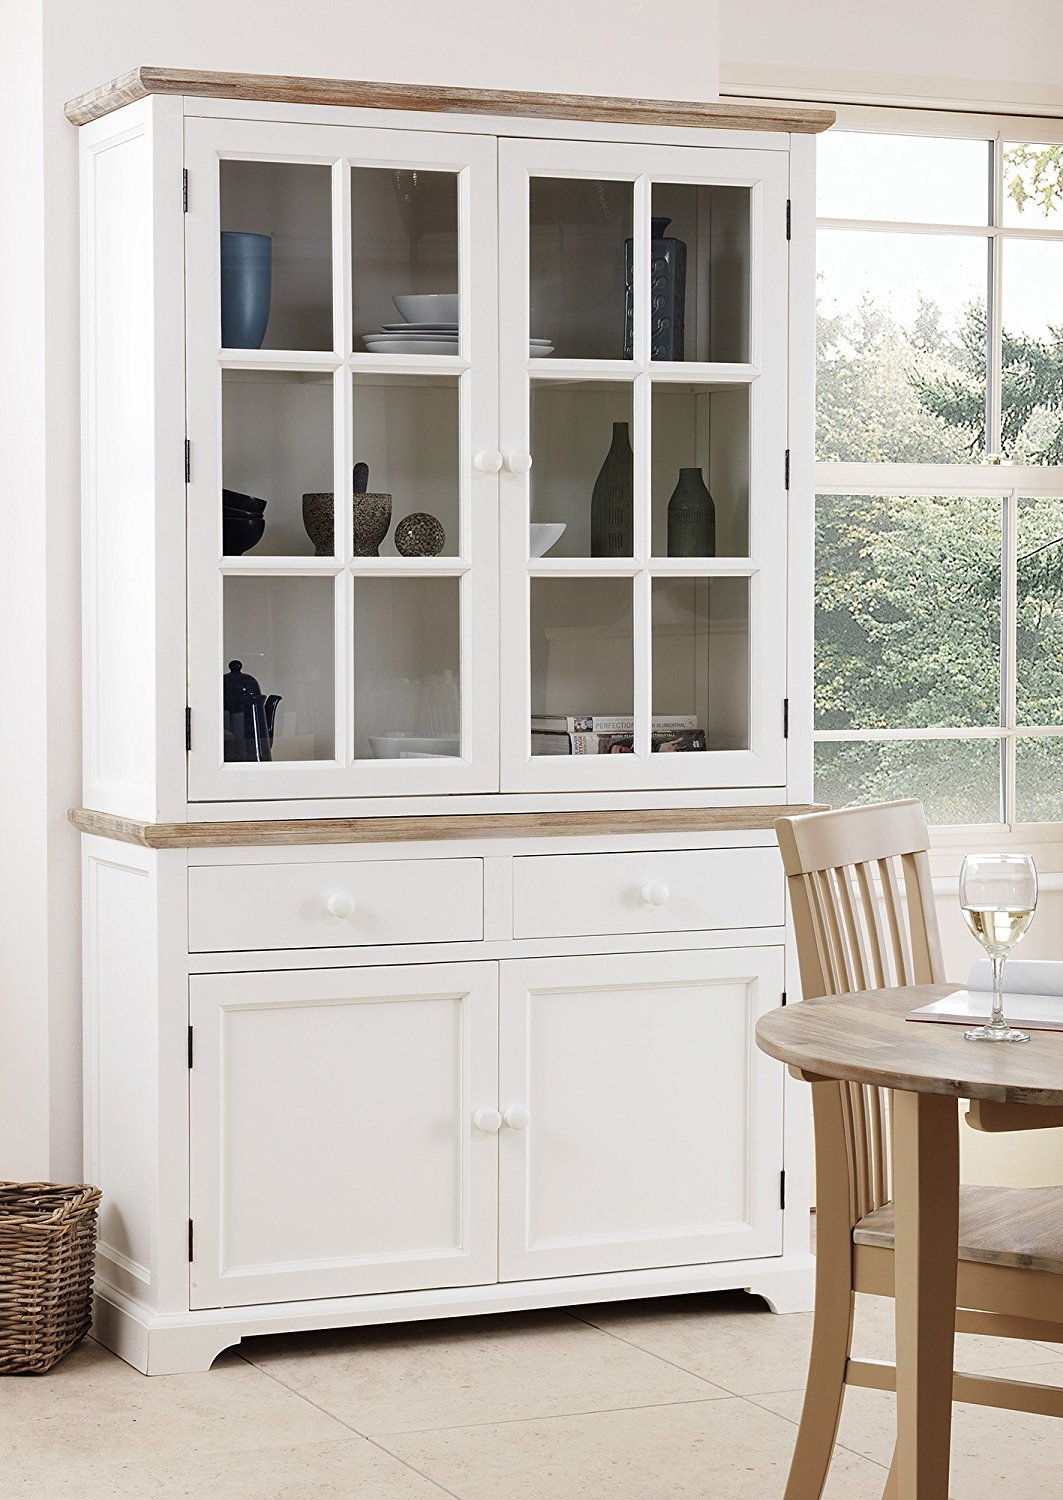 Large Kitchen Display Cabinets